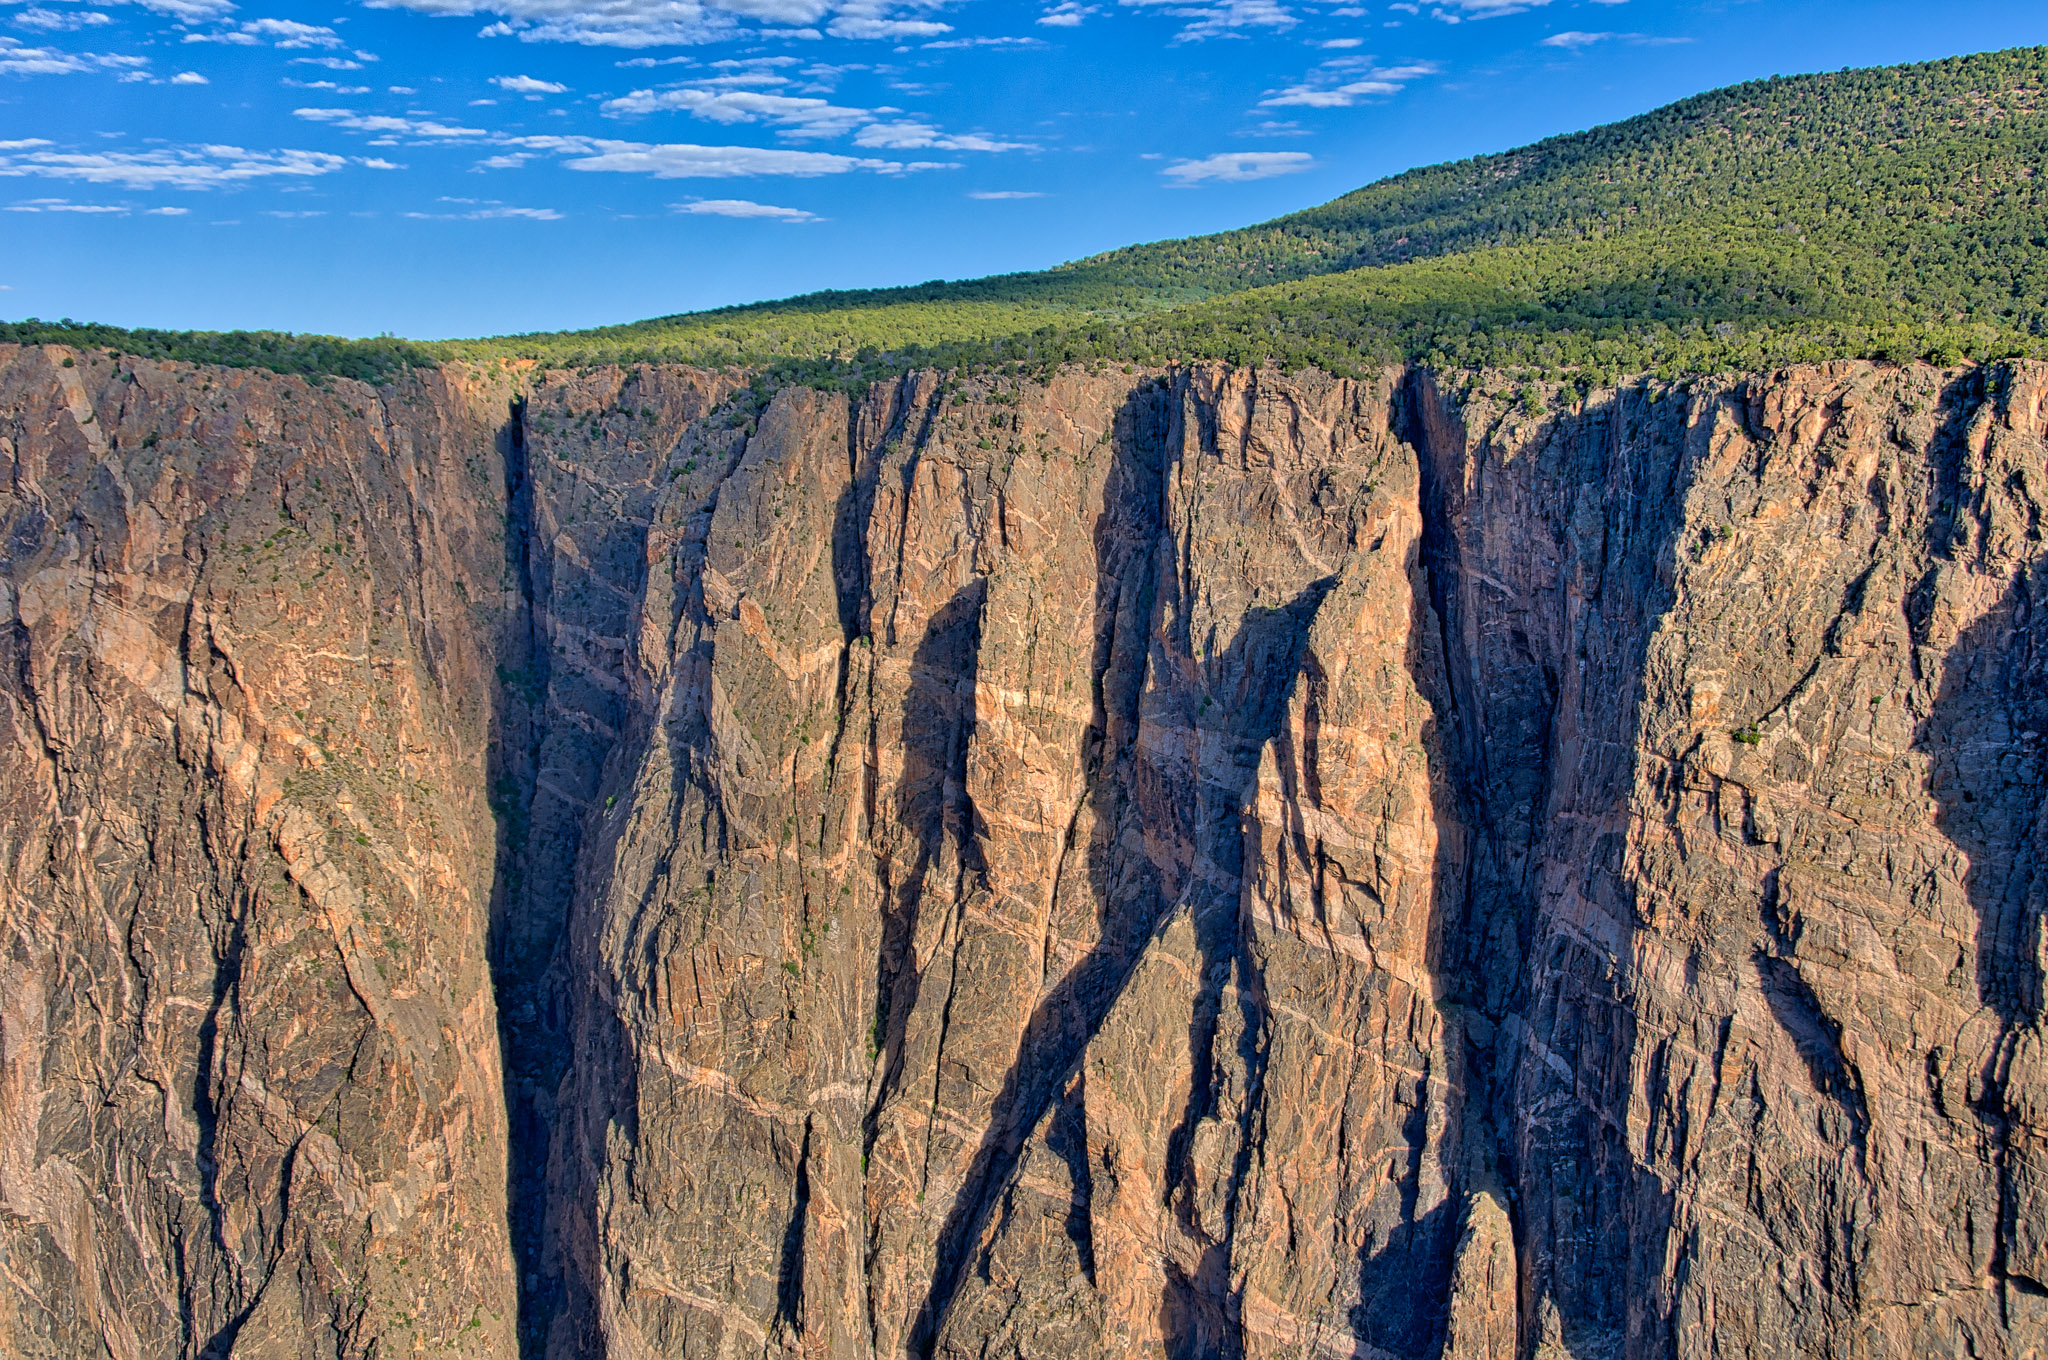 A view of the Painted Wall taken from northeast of Dragon Point in Black Canyon of the Gunnison National Park near Montrose, Colorado.